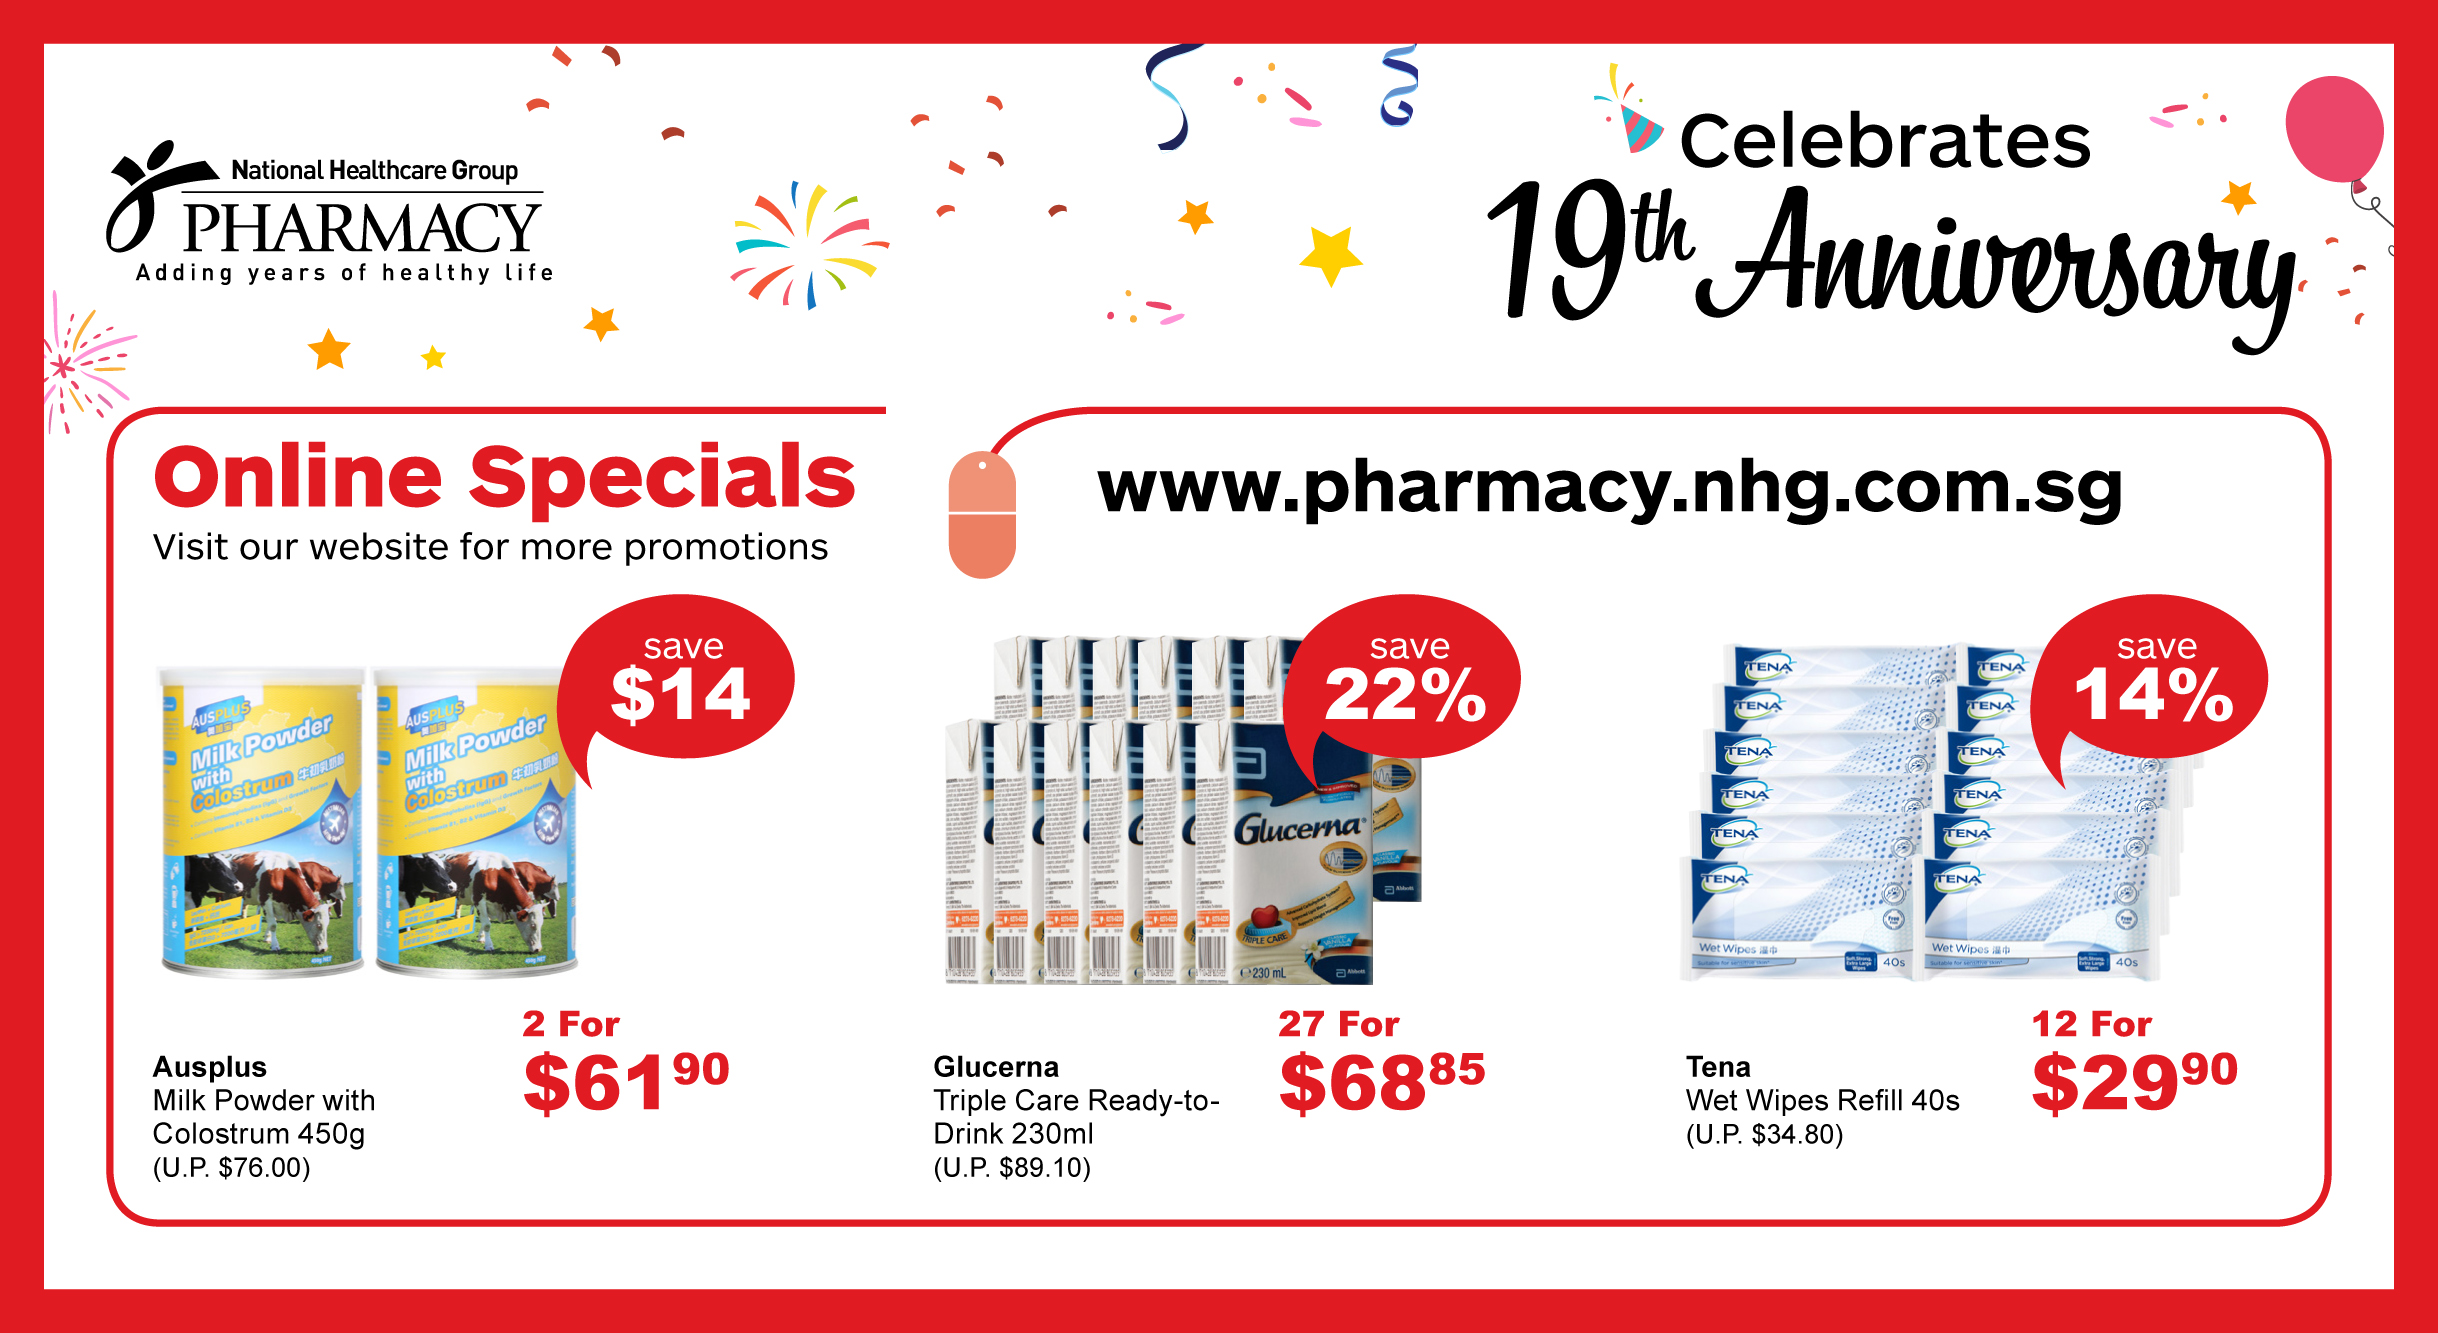 19th Anniversary Online Specials Deals